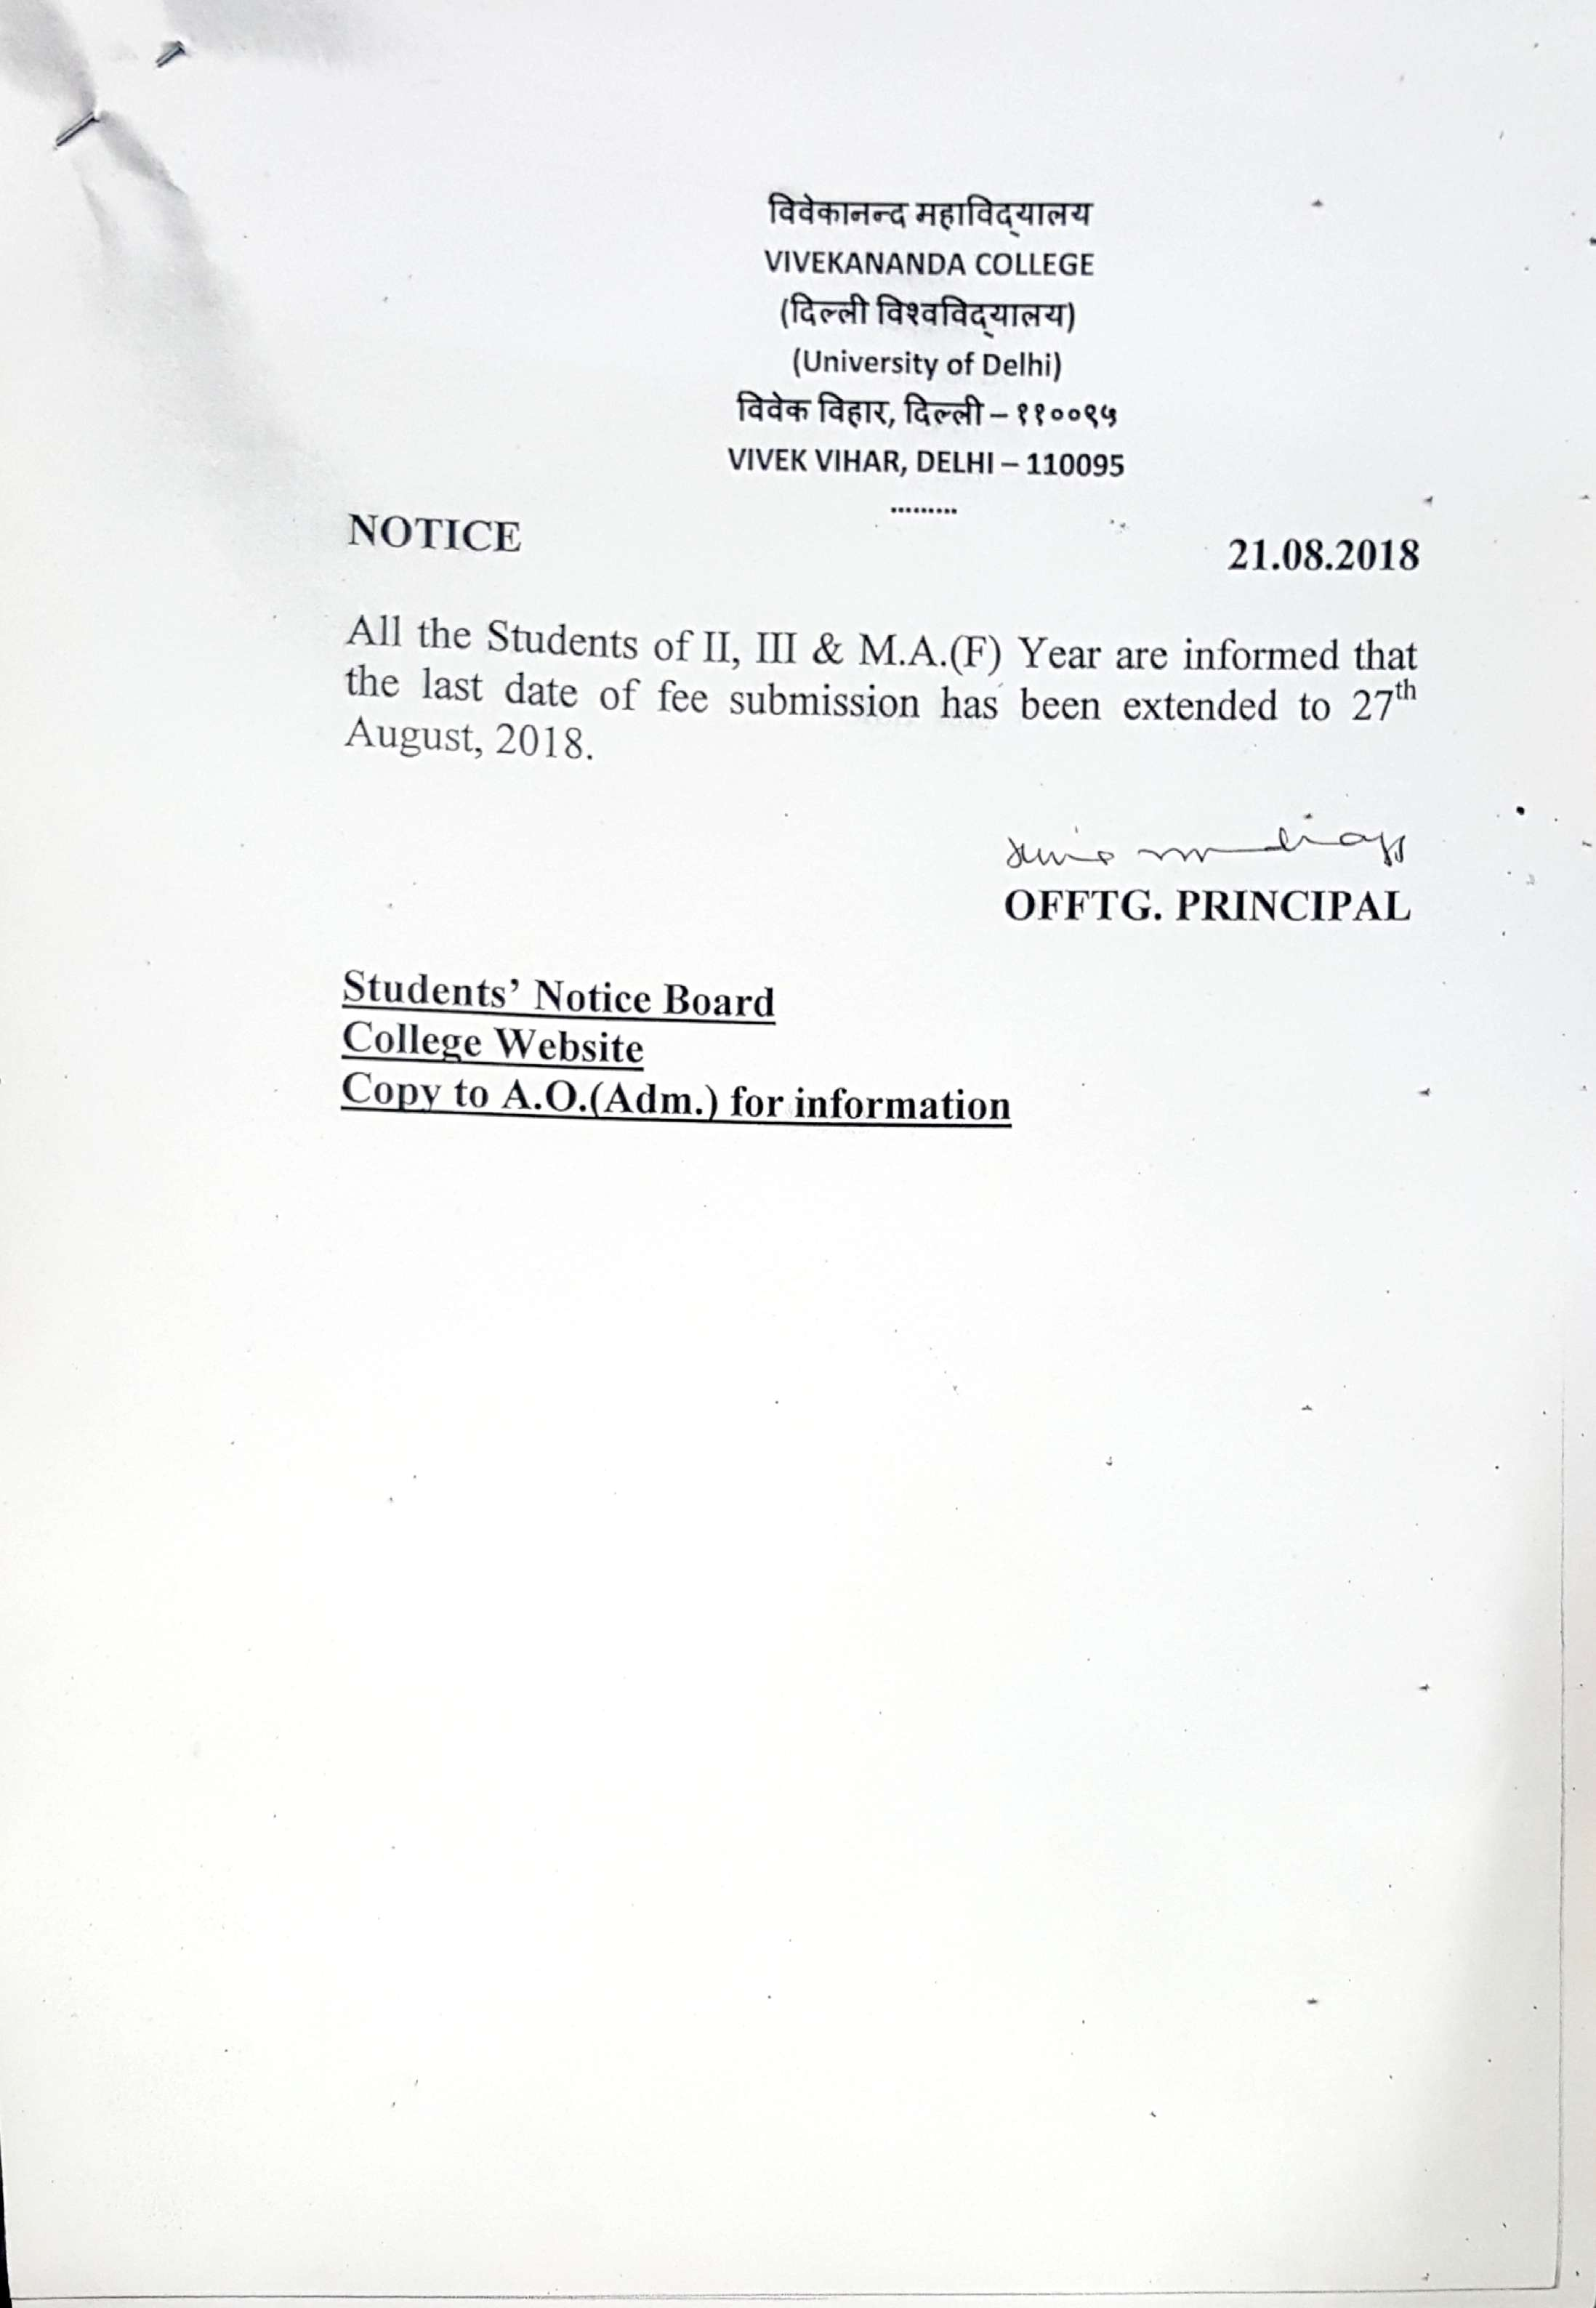 Notice-regarding-extension-of-fee-submission-2018 Teachers Application Forms For College on